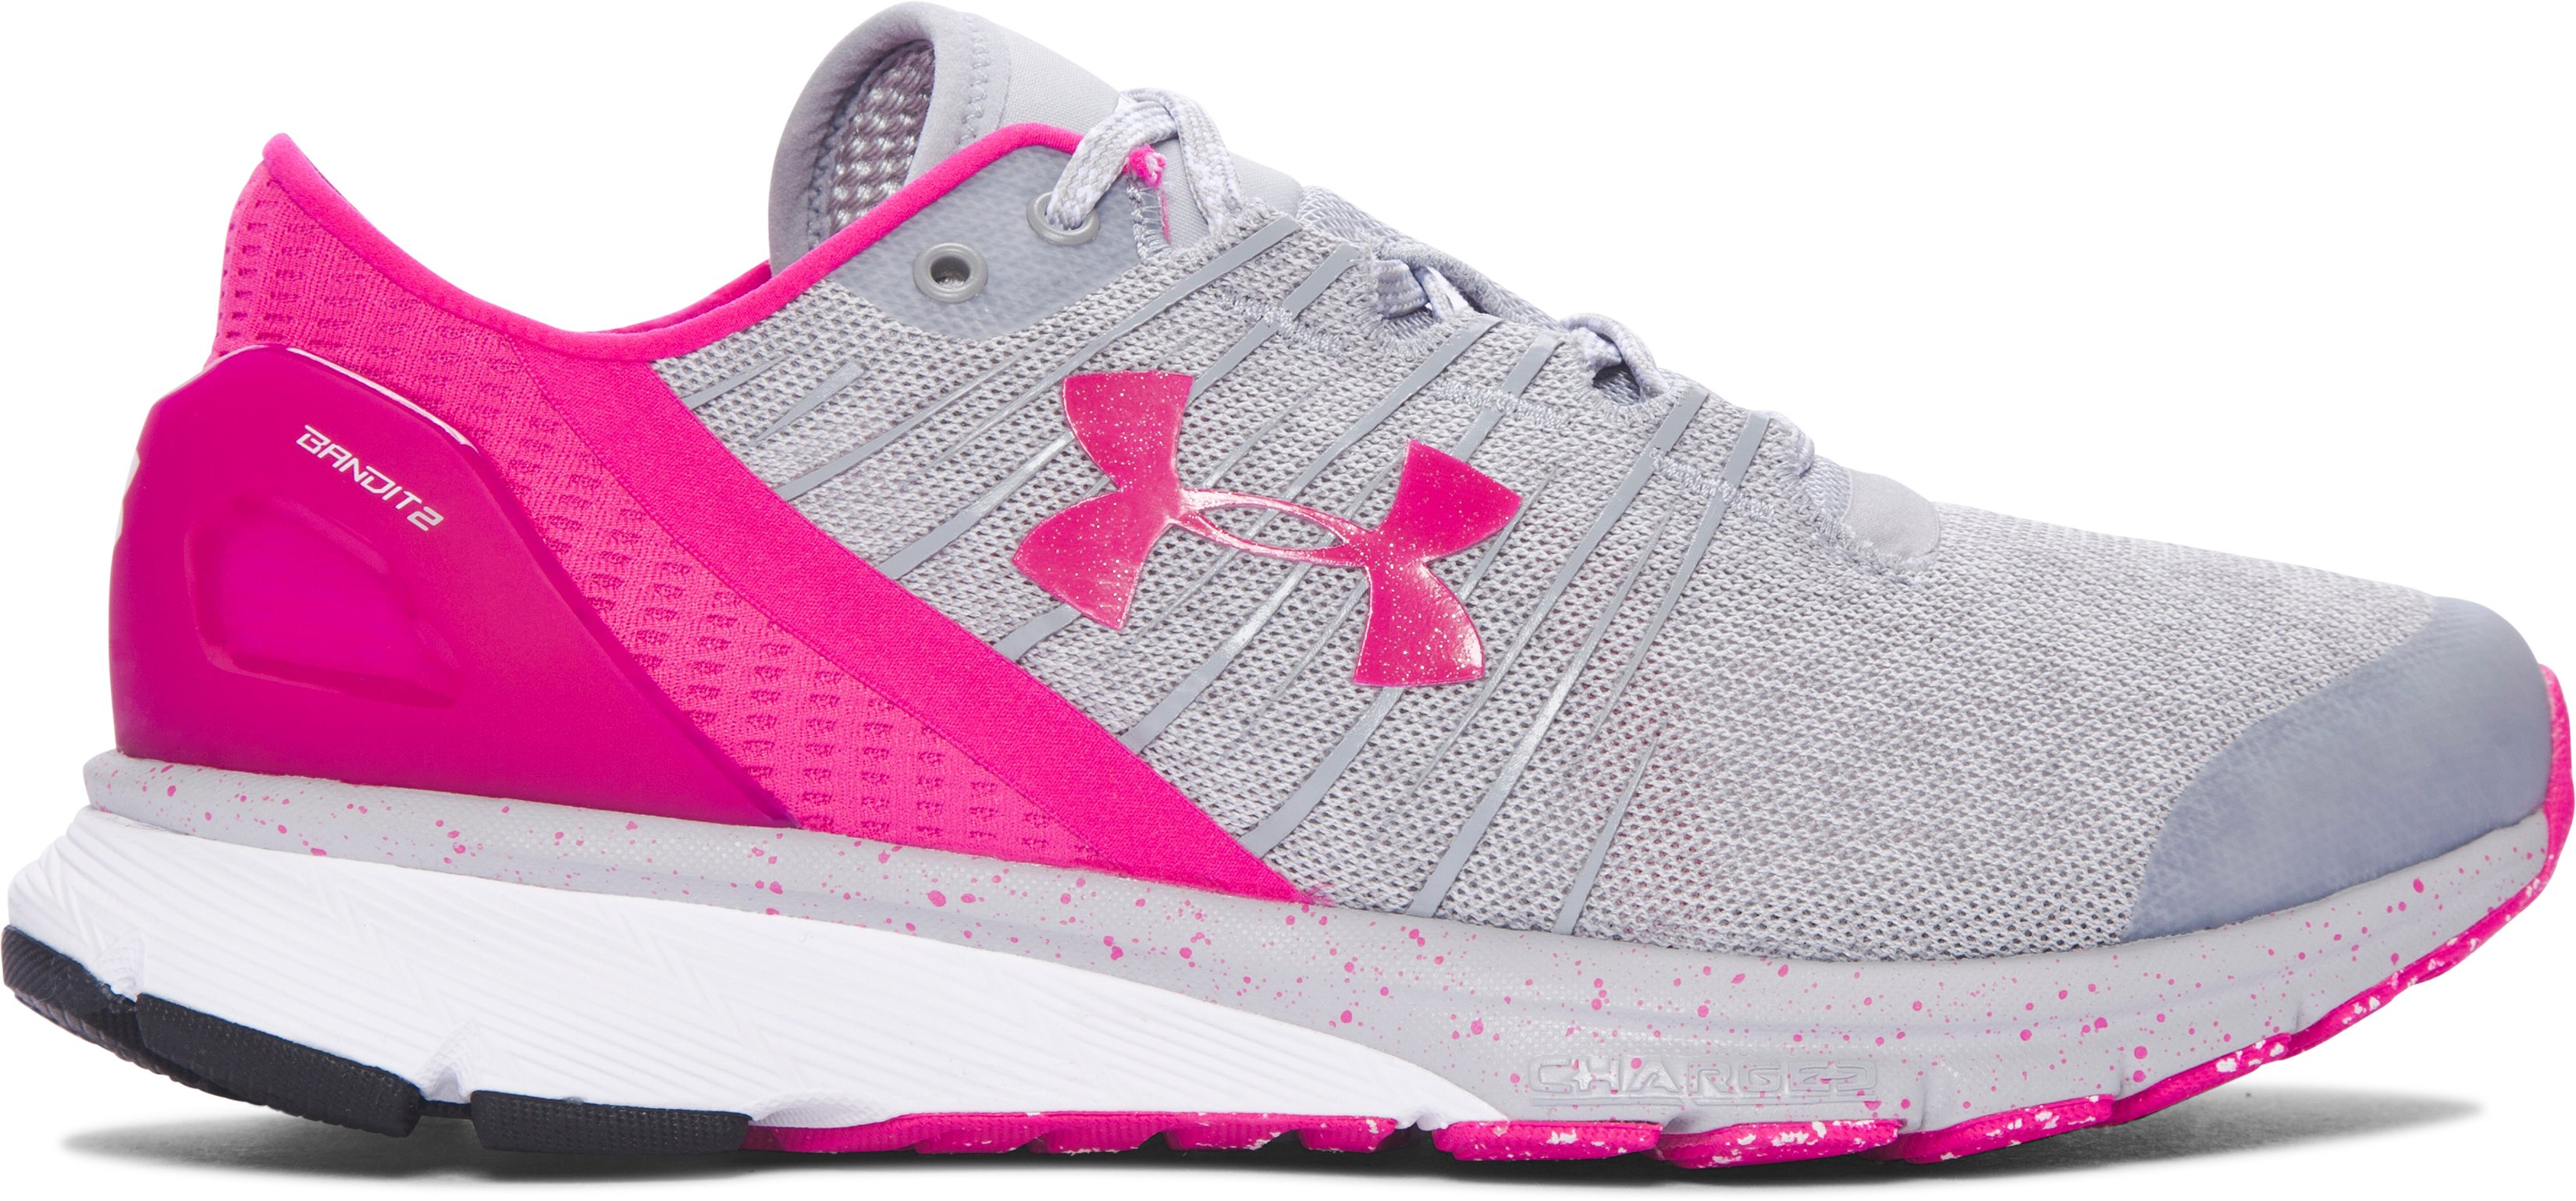 Zapatillas de Running UA Charged Bandit 2 para Mujer, 360 degree view